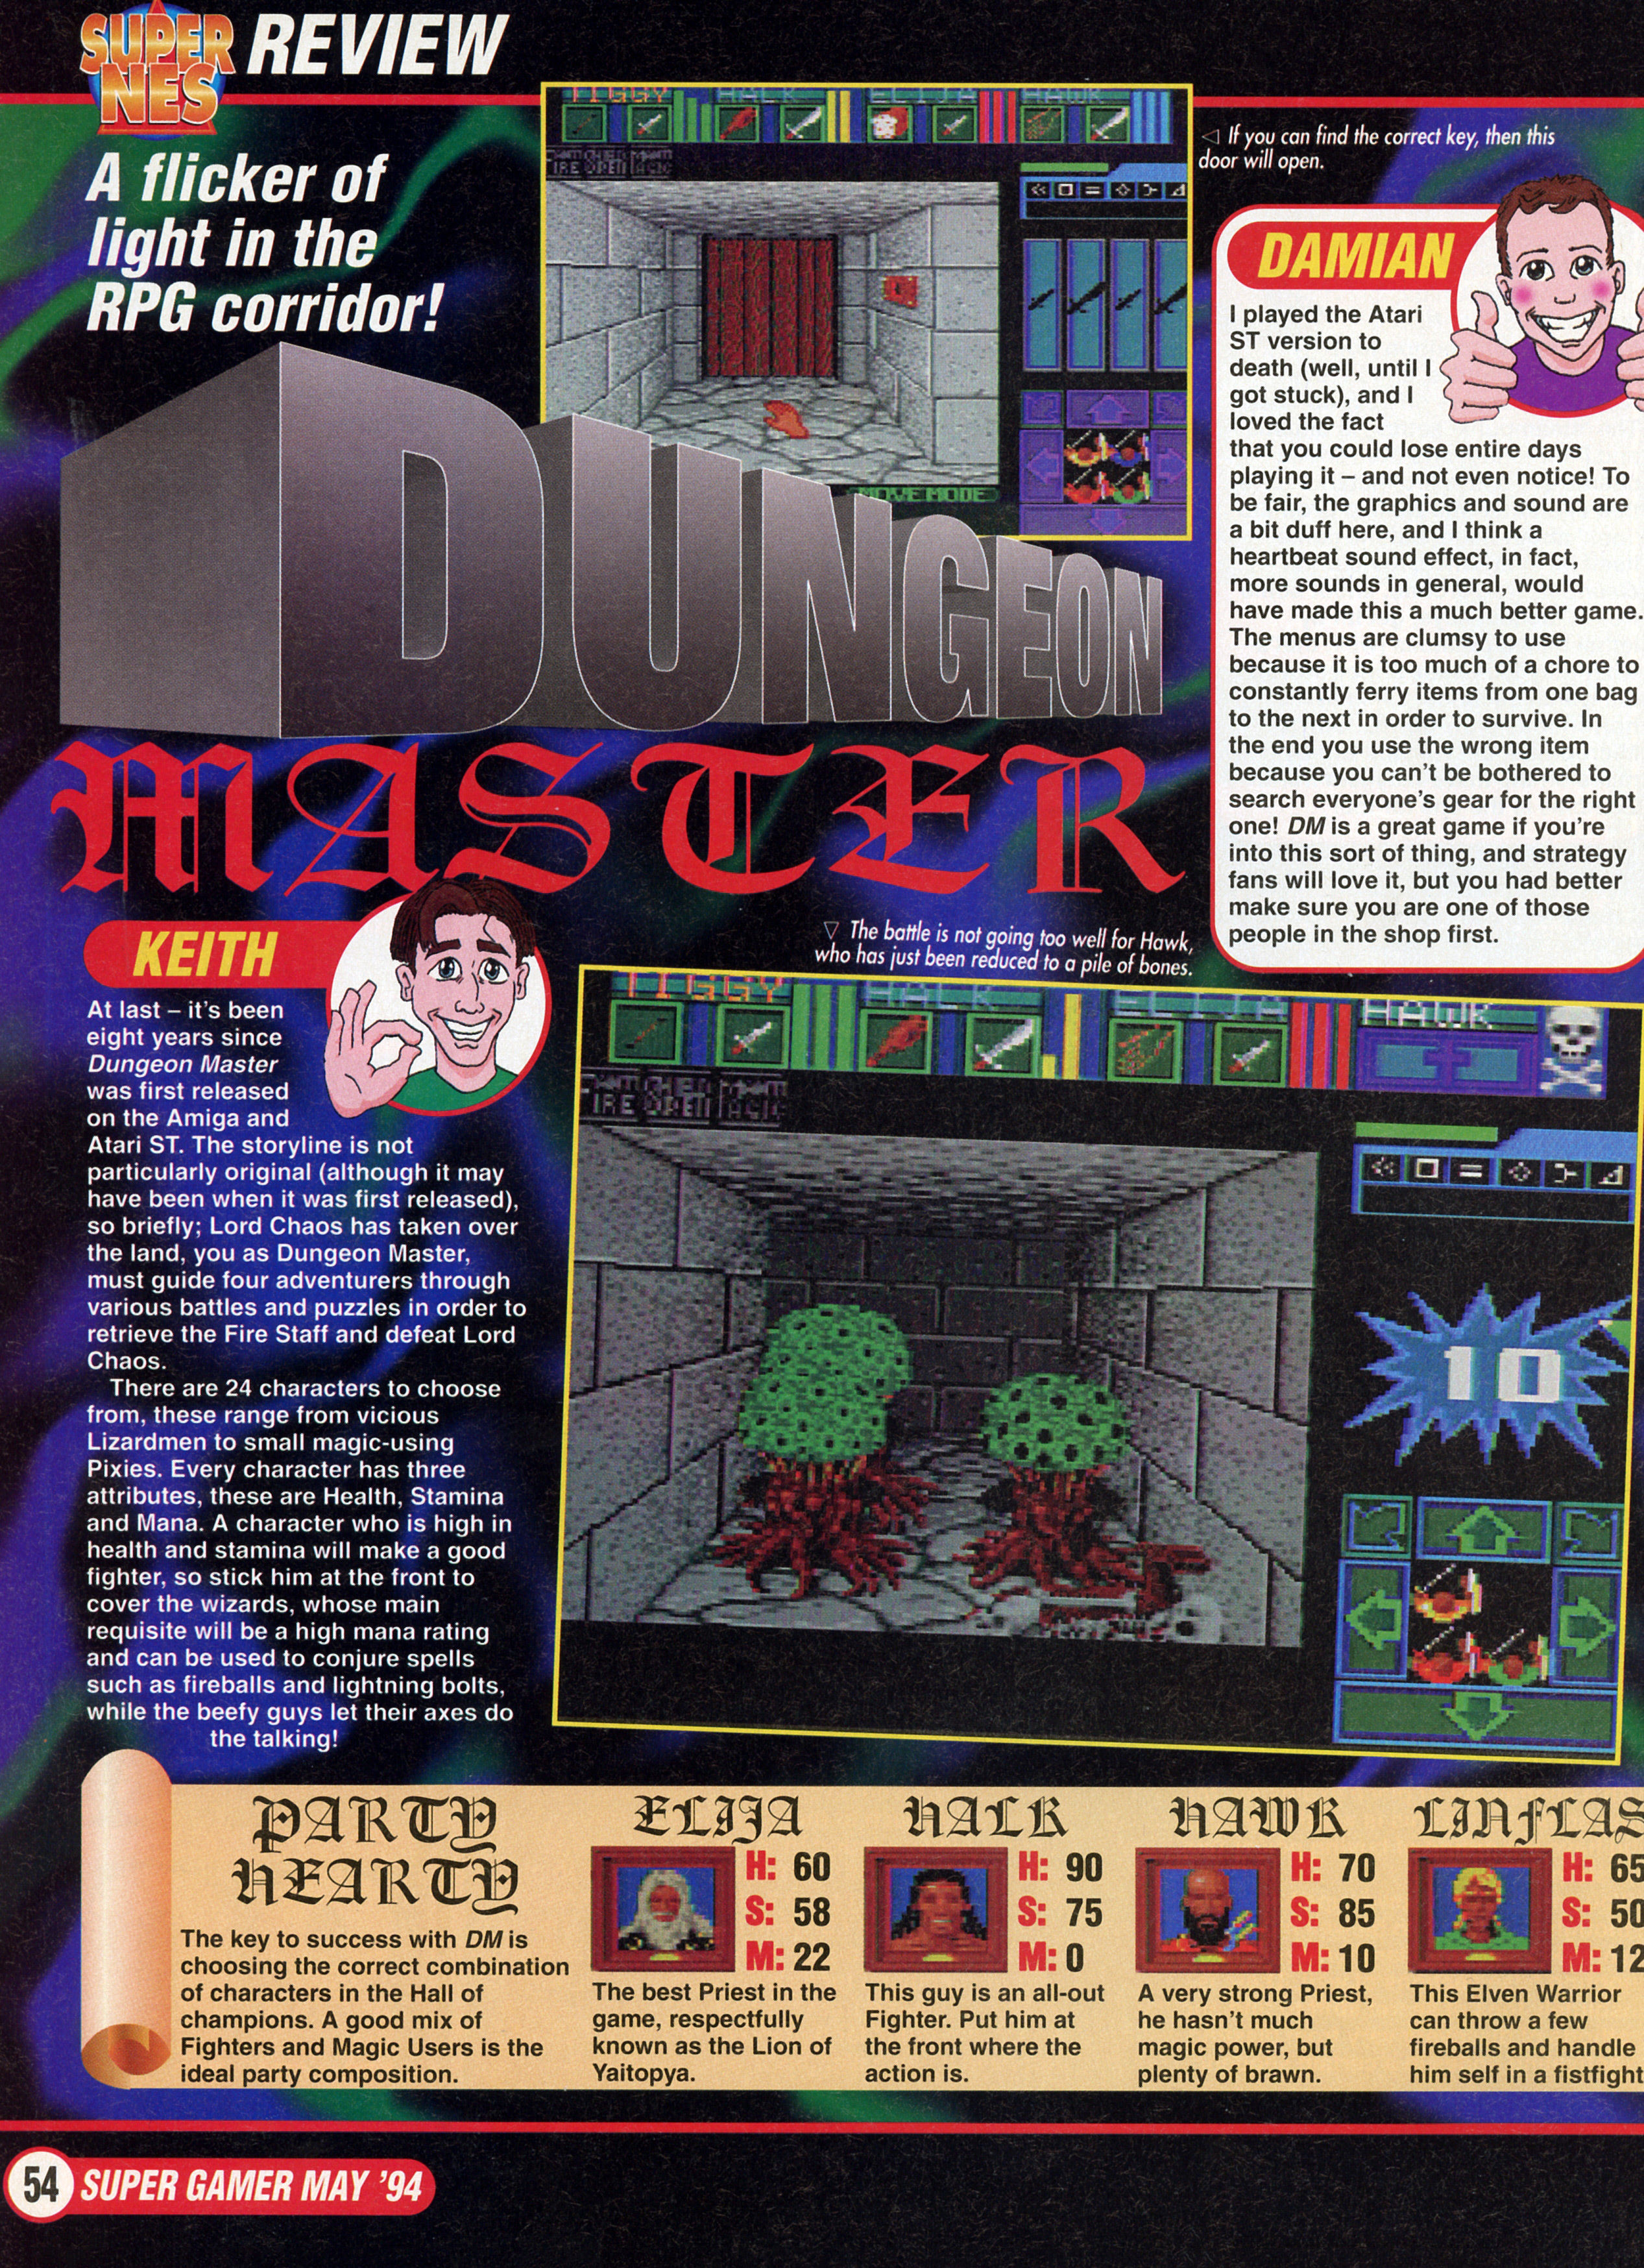 Dungeon Master for Super NES Review published in British magazine 'Nintendo Super Gamer', Issue #2 May 1994, Page 54